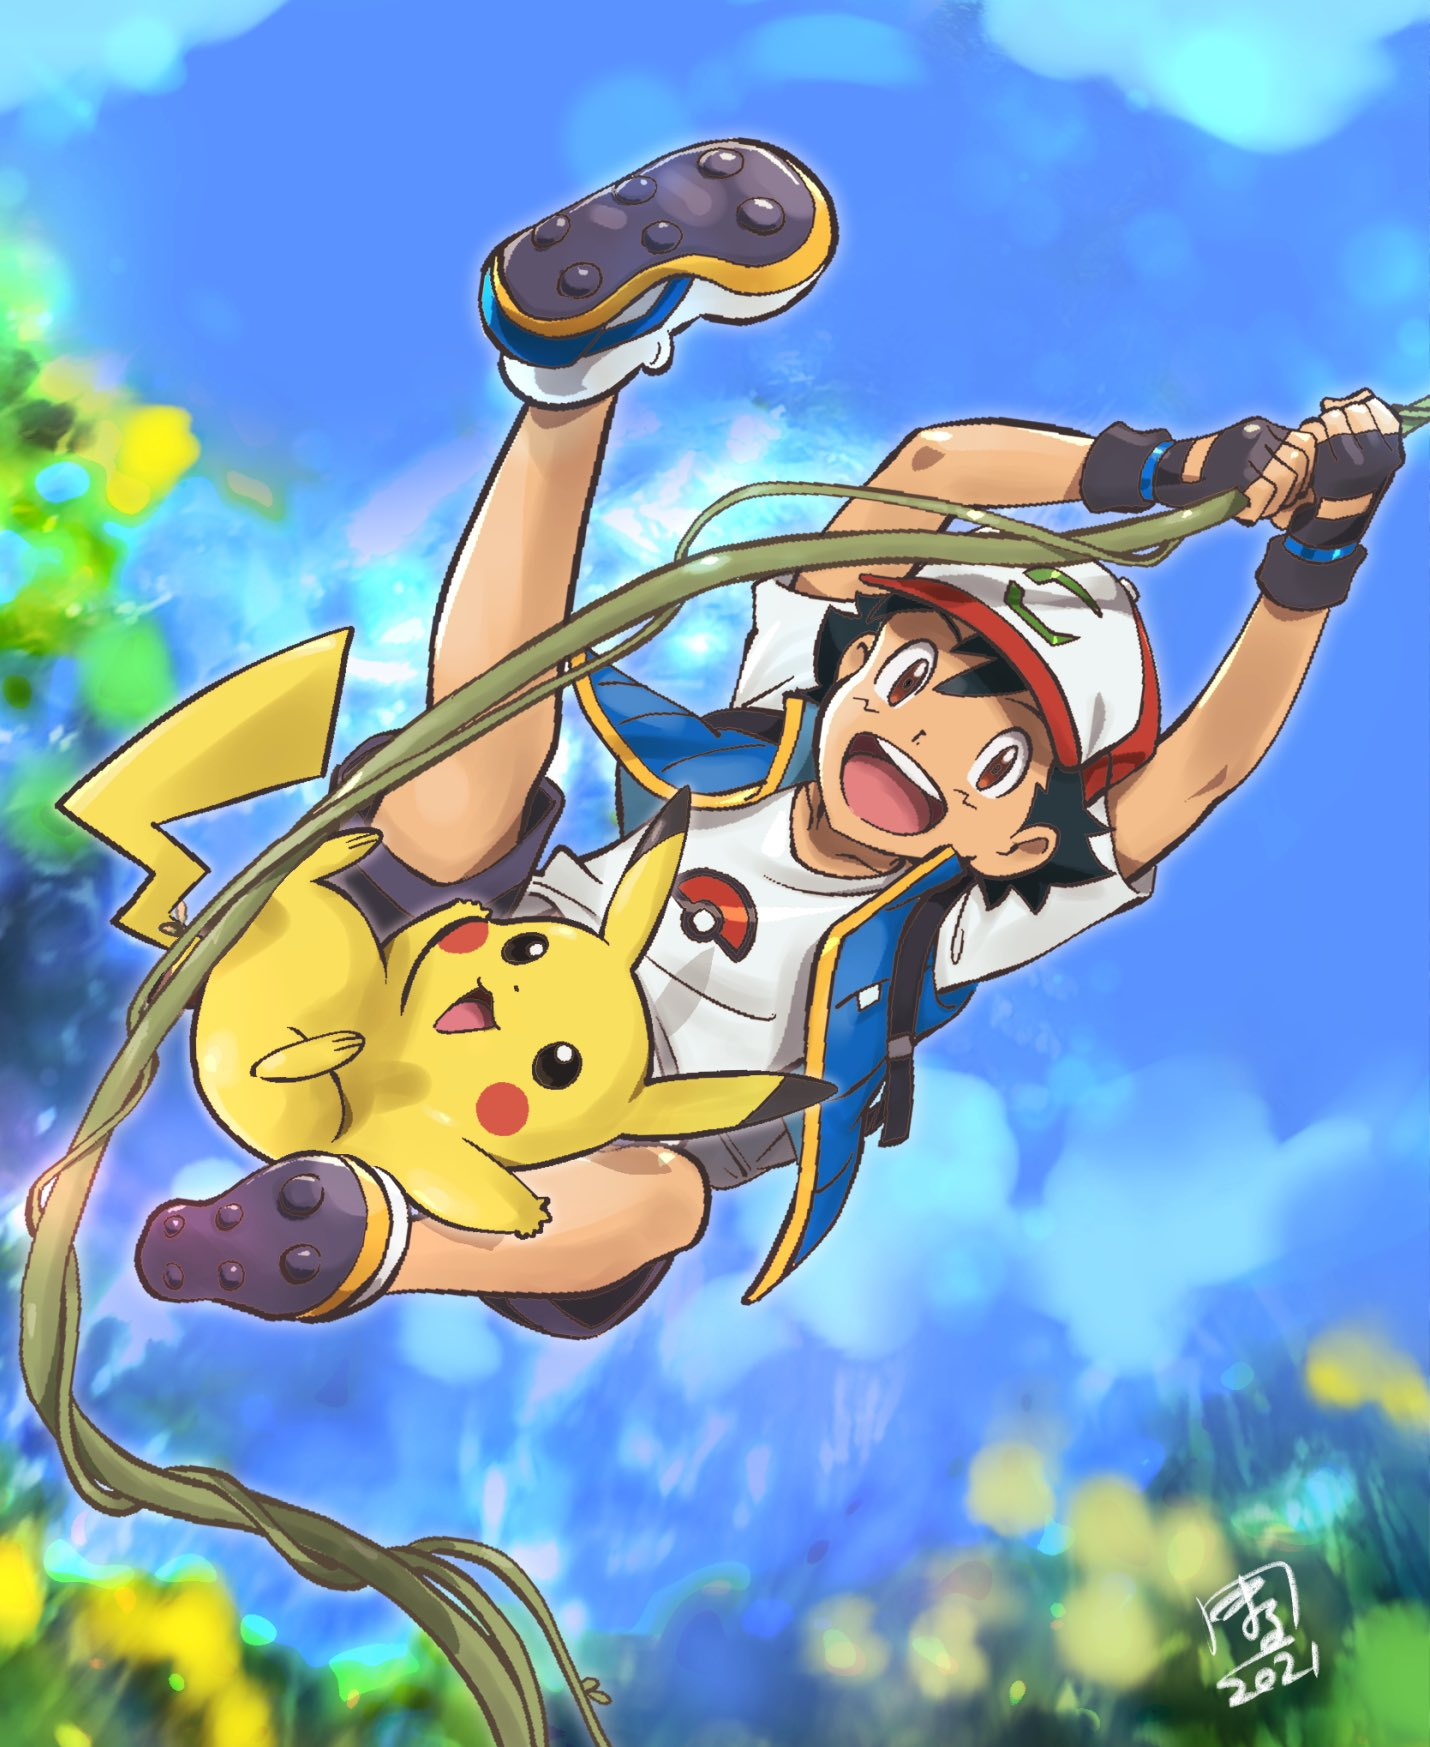 1boy ash_ketchum bangs baseball_cap black_gloves black_hair brown_eyes commentary_request dated day fingerless_gloves gen_1_pokemon gloves hat highres jacket male_focus marufuji_hirotaka open_clothes open_jacket open_mouth outdoors pikachu plant pokemon pokemon_(anime) pokemon_(creature) pokemon_m23 shirt shoes short_sleeves shorts sleeveless sleeveless_jacket smile teeth tongue vines white_shirt